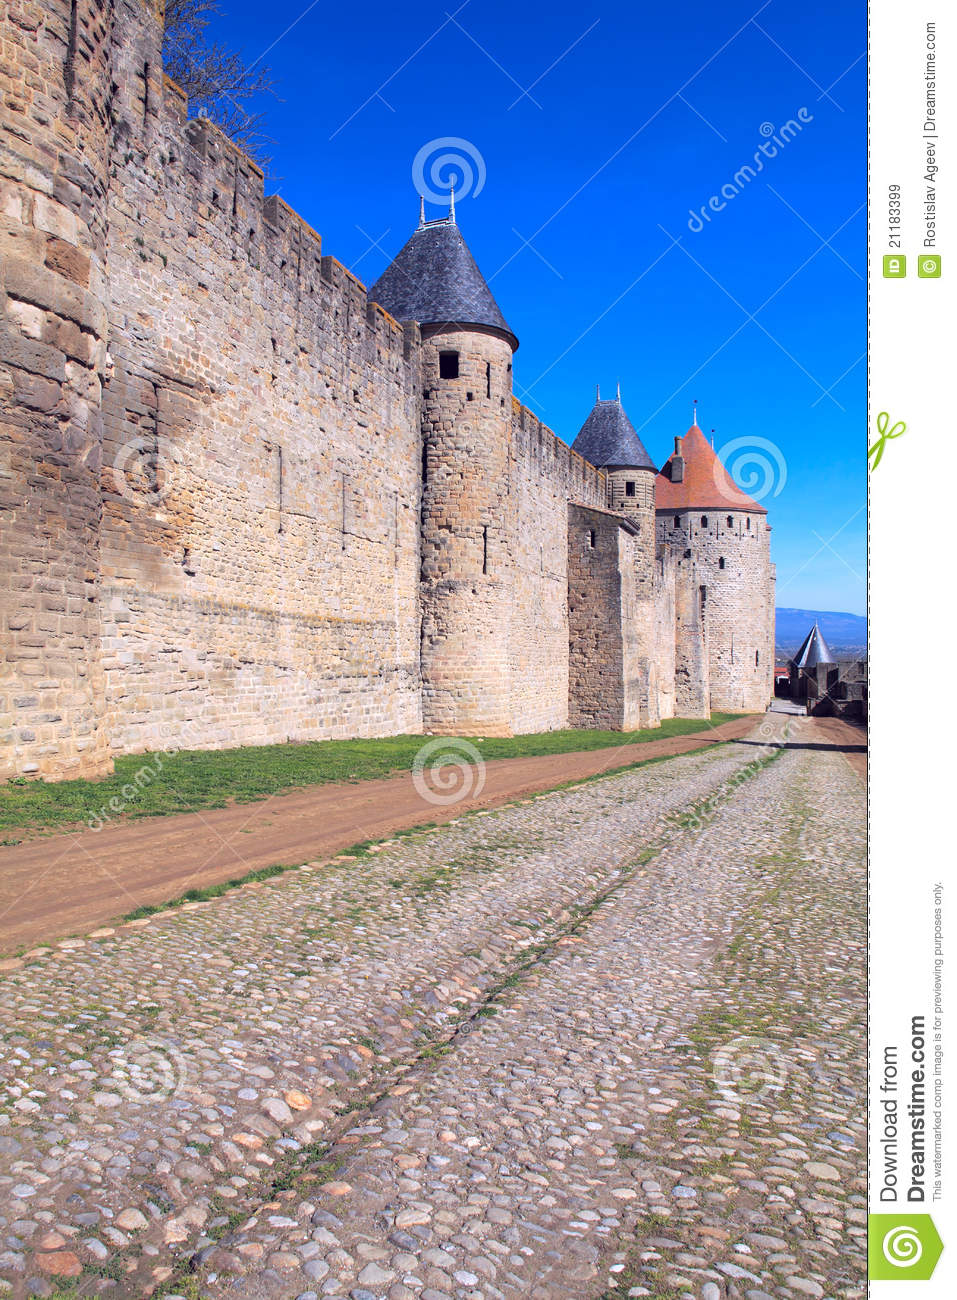 Medieval Walls and towers, city of Carcassonne